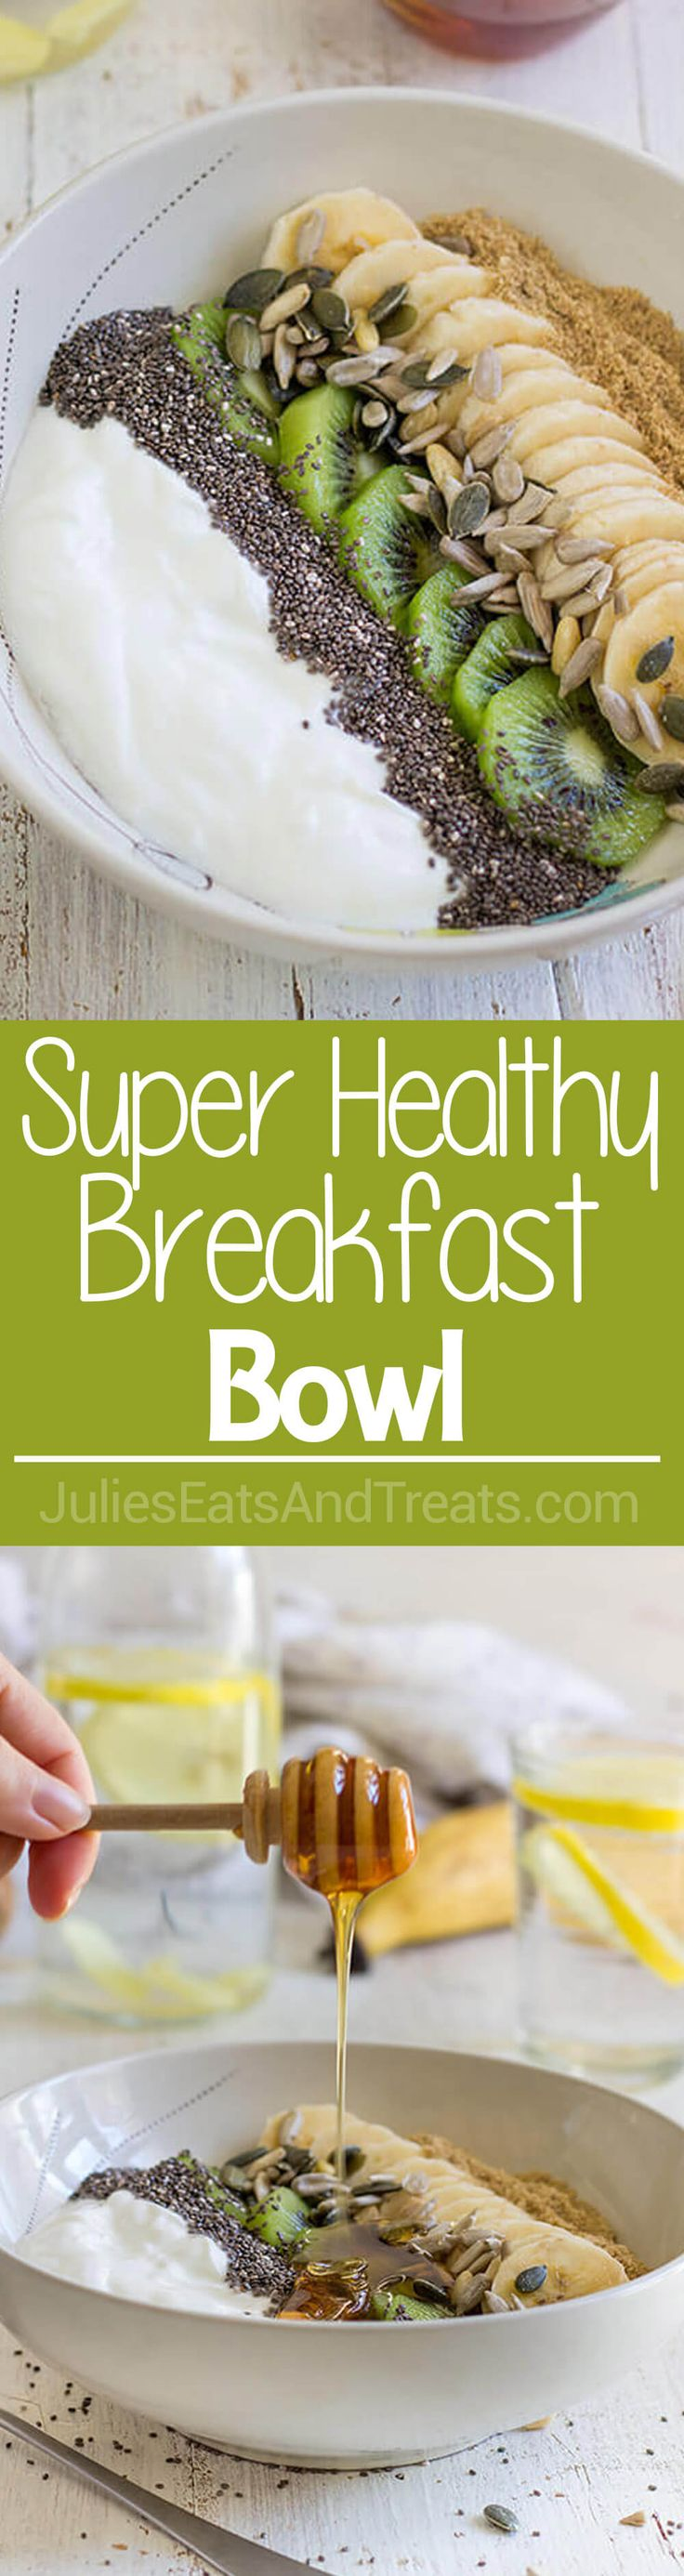 Super Healthy Breakfast Bowl ~ Start off your day with this nutritious meal ready in less than 5 minutes. An easy breakfast with yogurt, fruits and seeds! ~ http://www.julieseatsandtreats.com